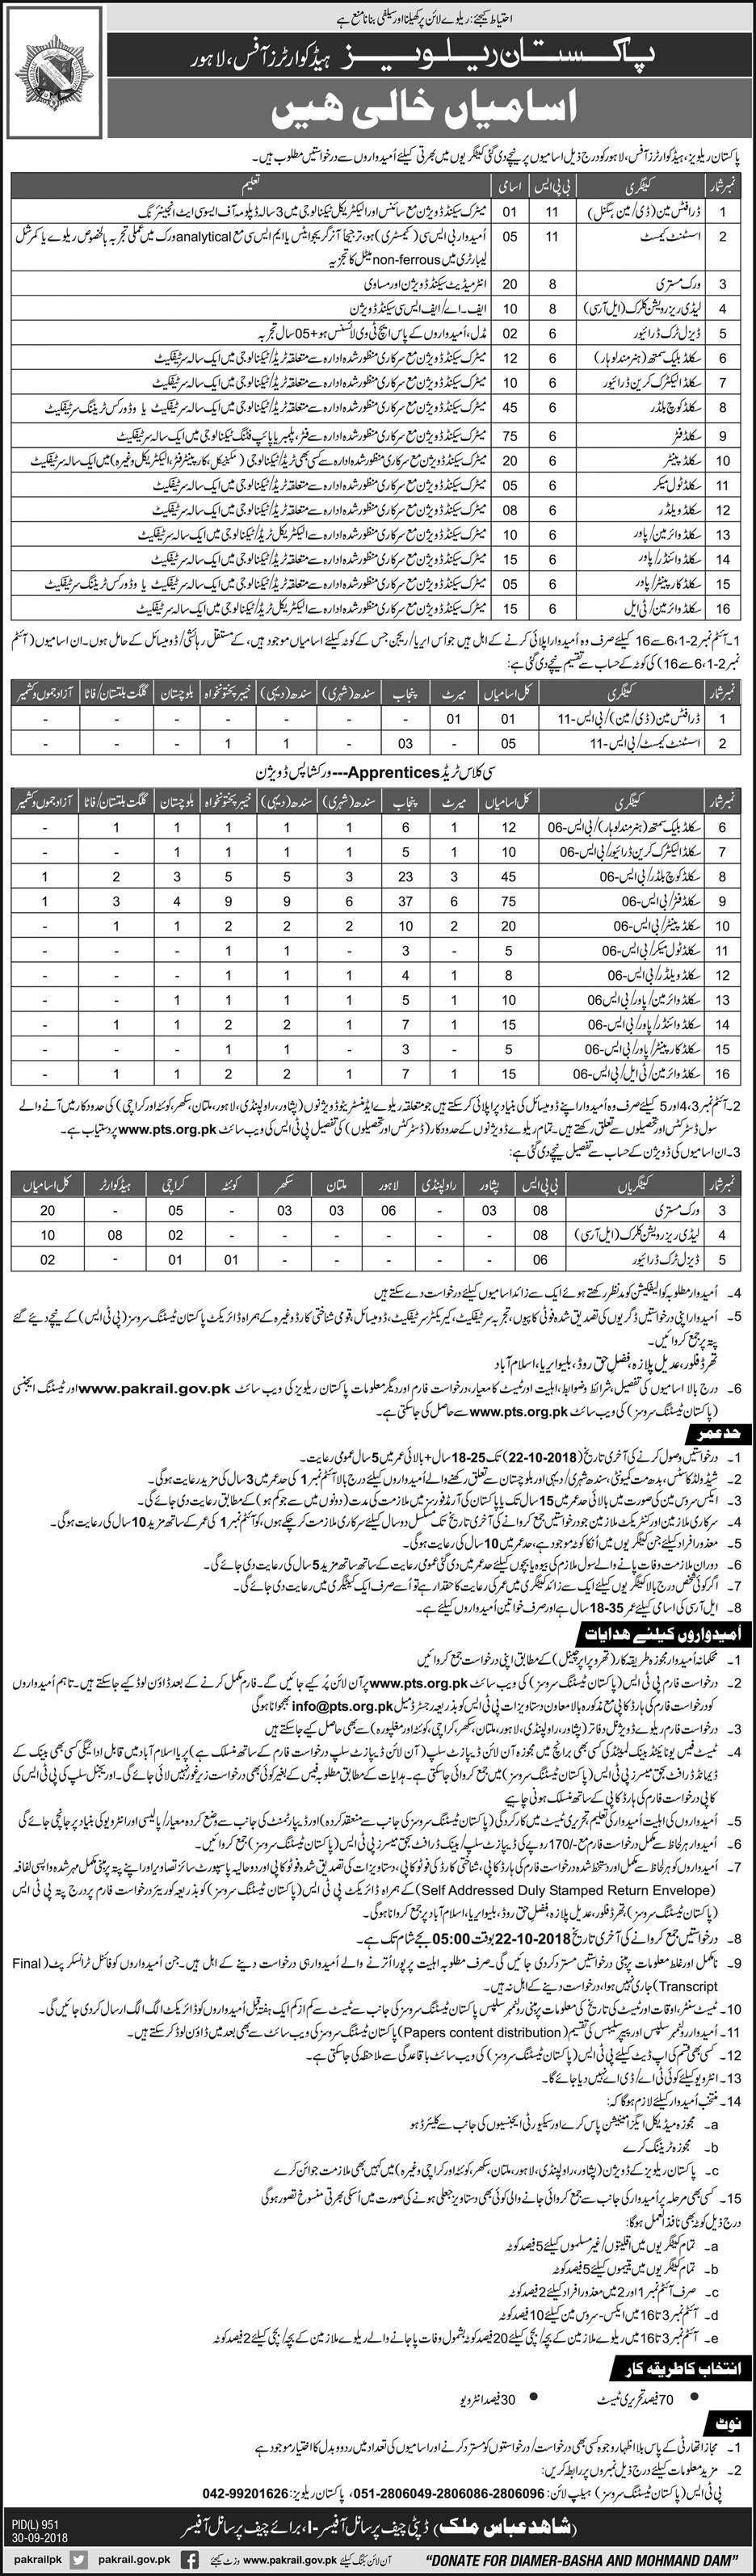 Latest Pakistan Railways Jobs 2018